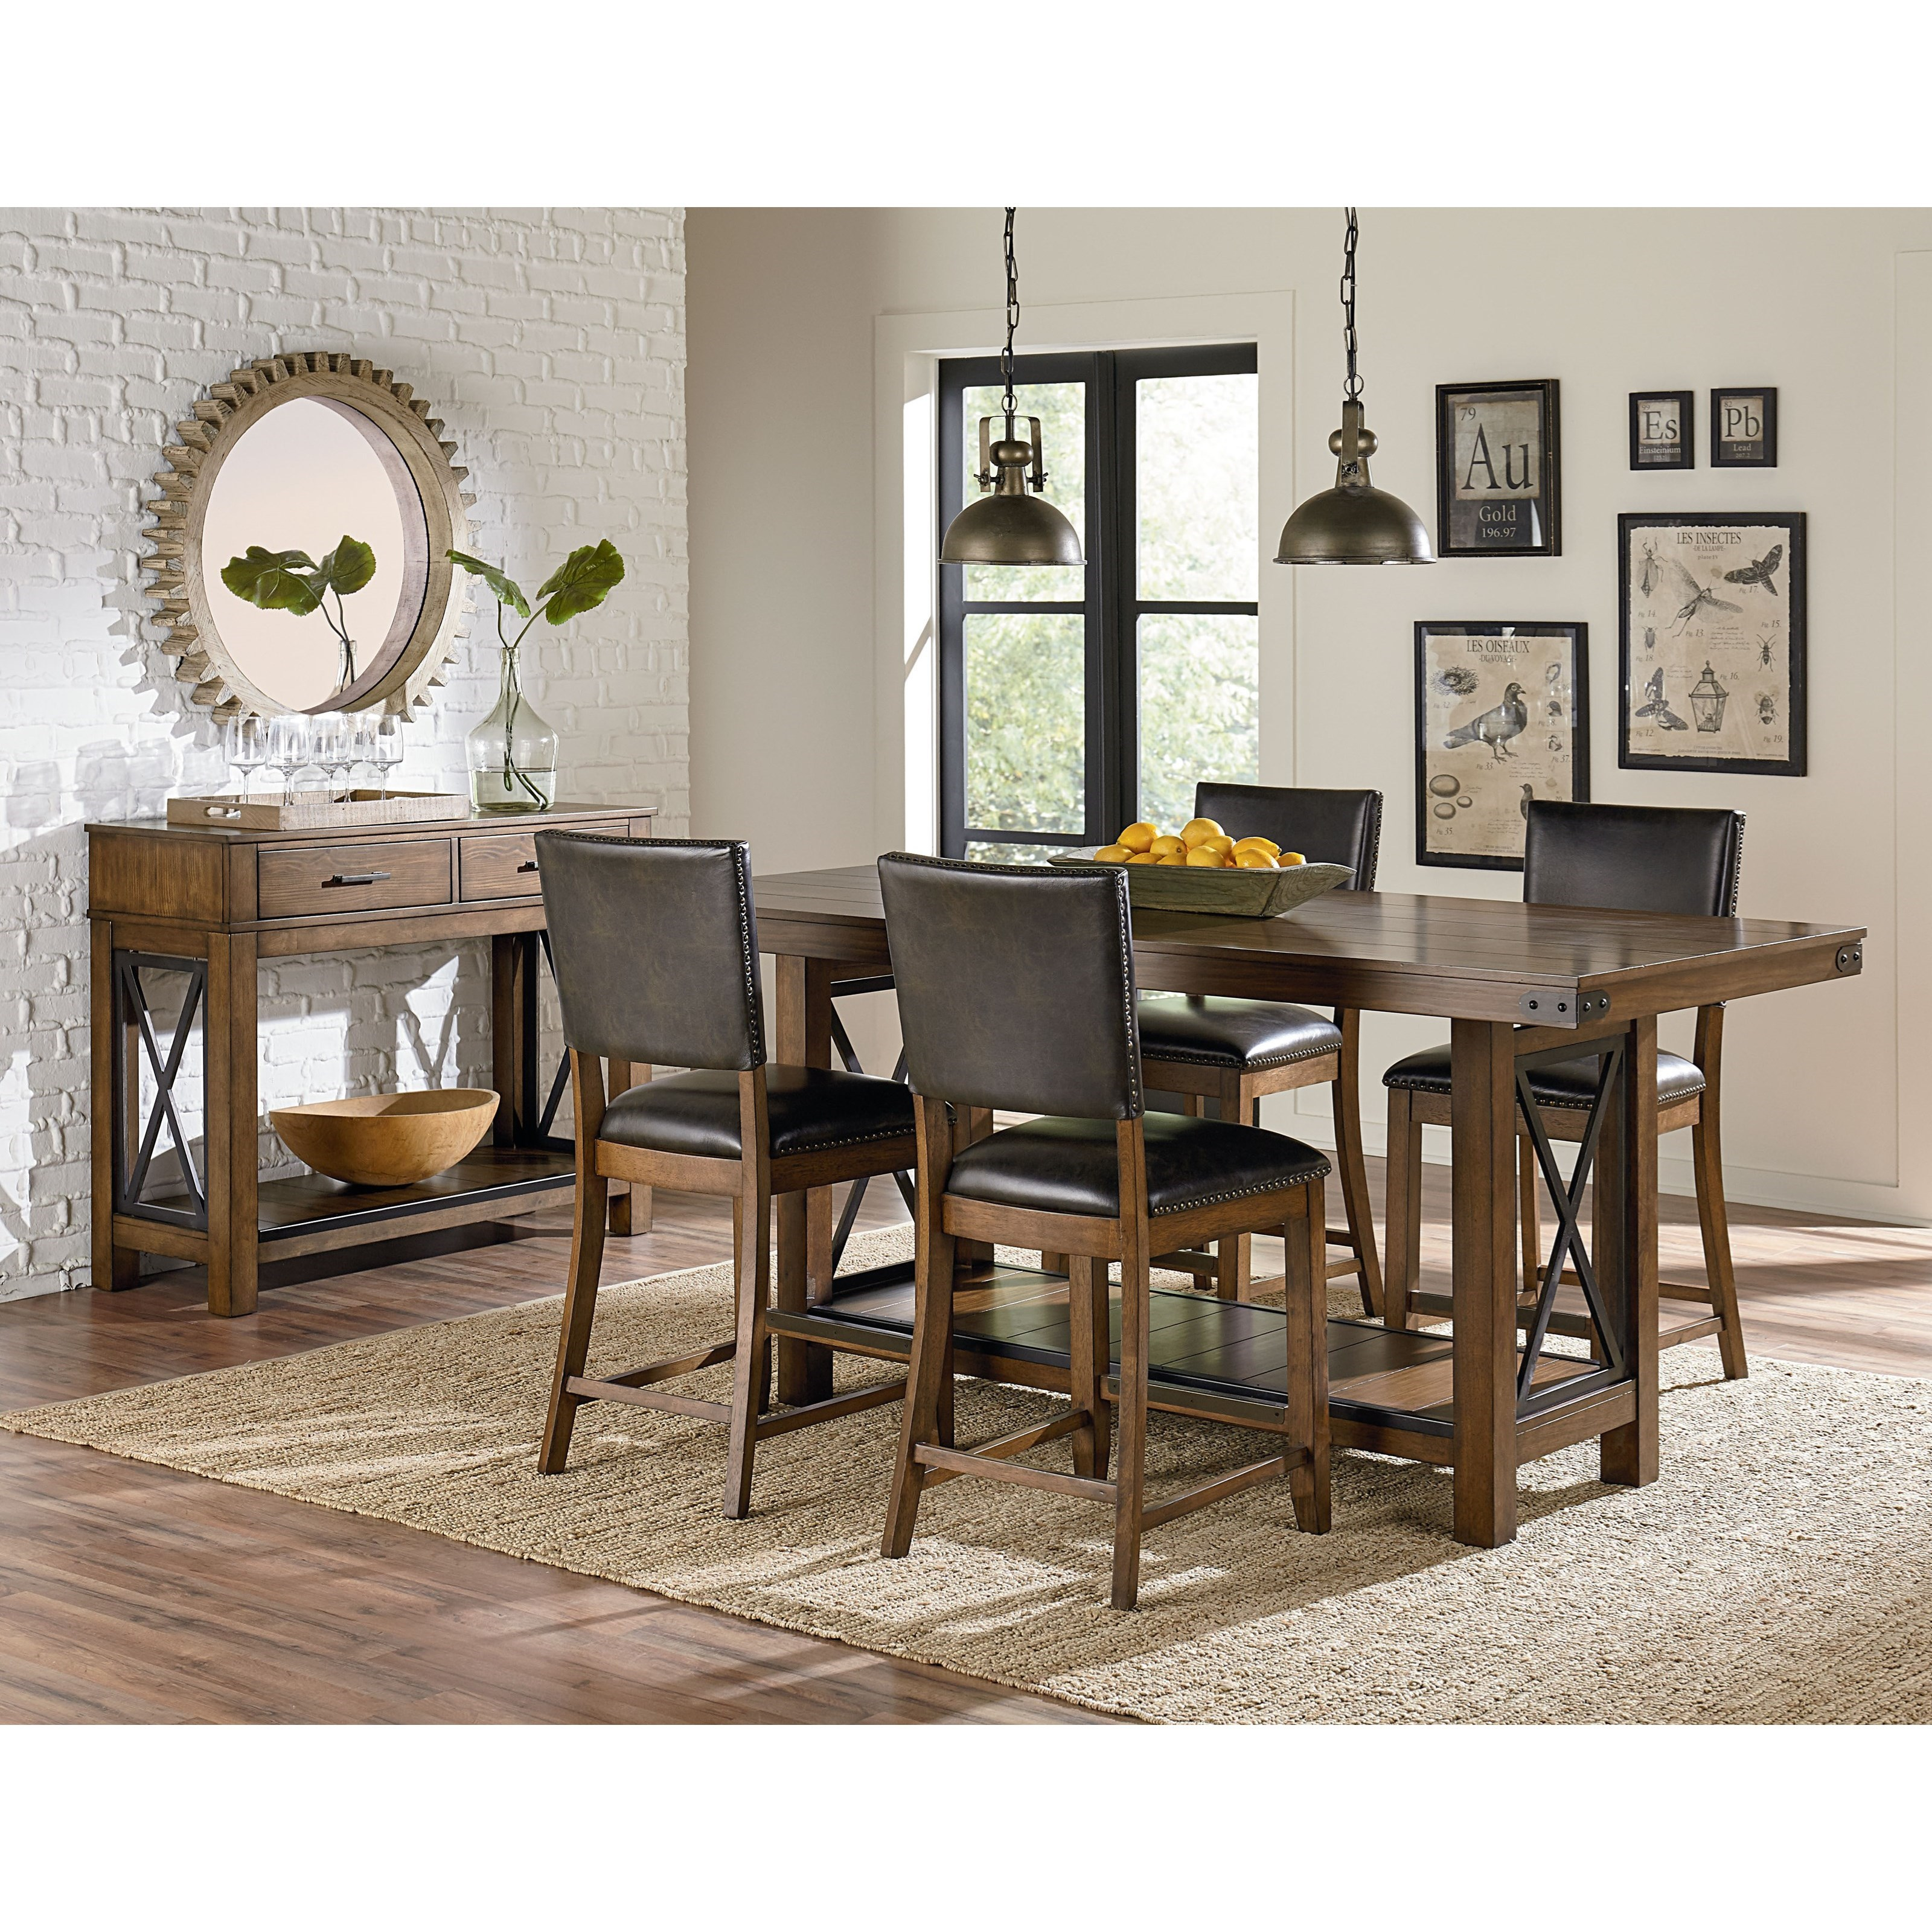 Standard furniture benson casual dining room group for Casual dining room